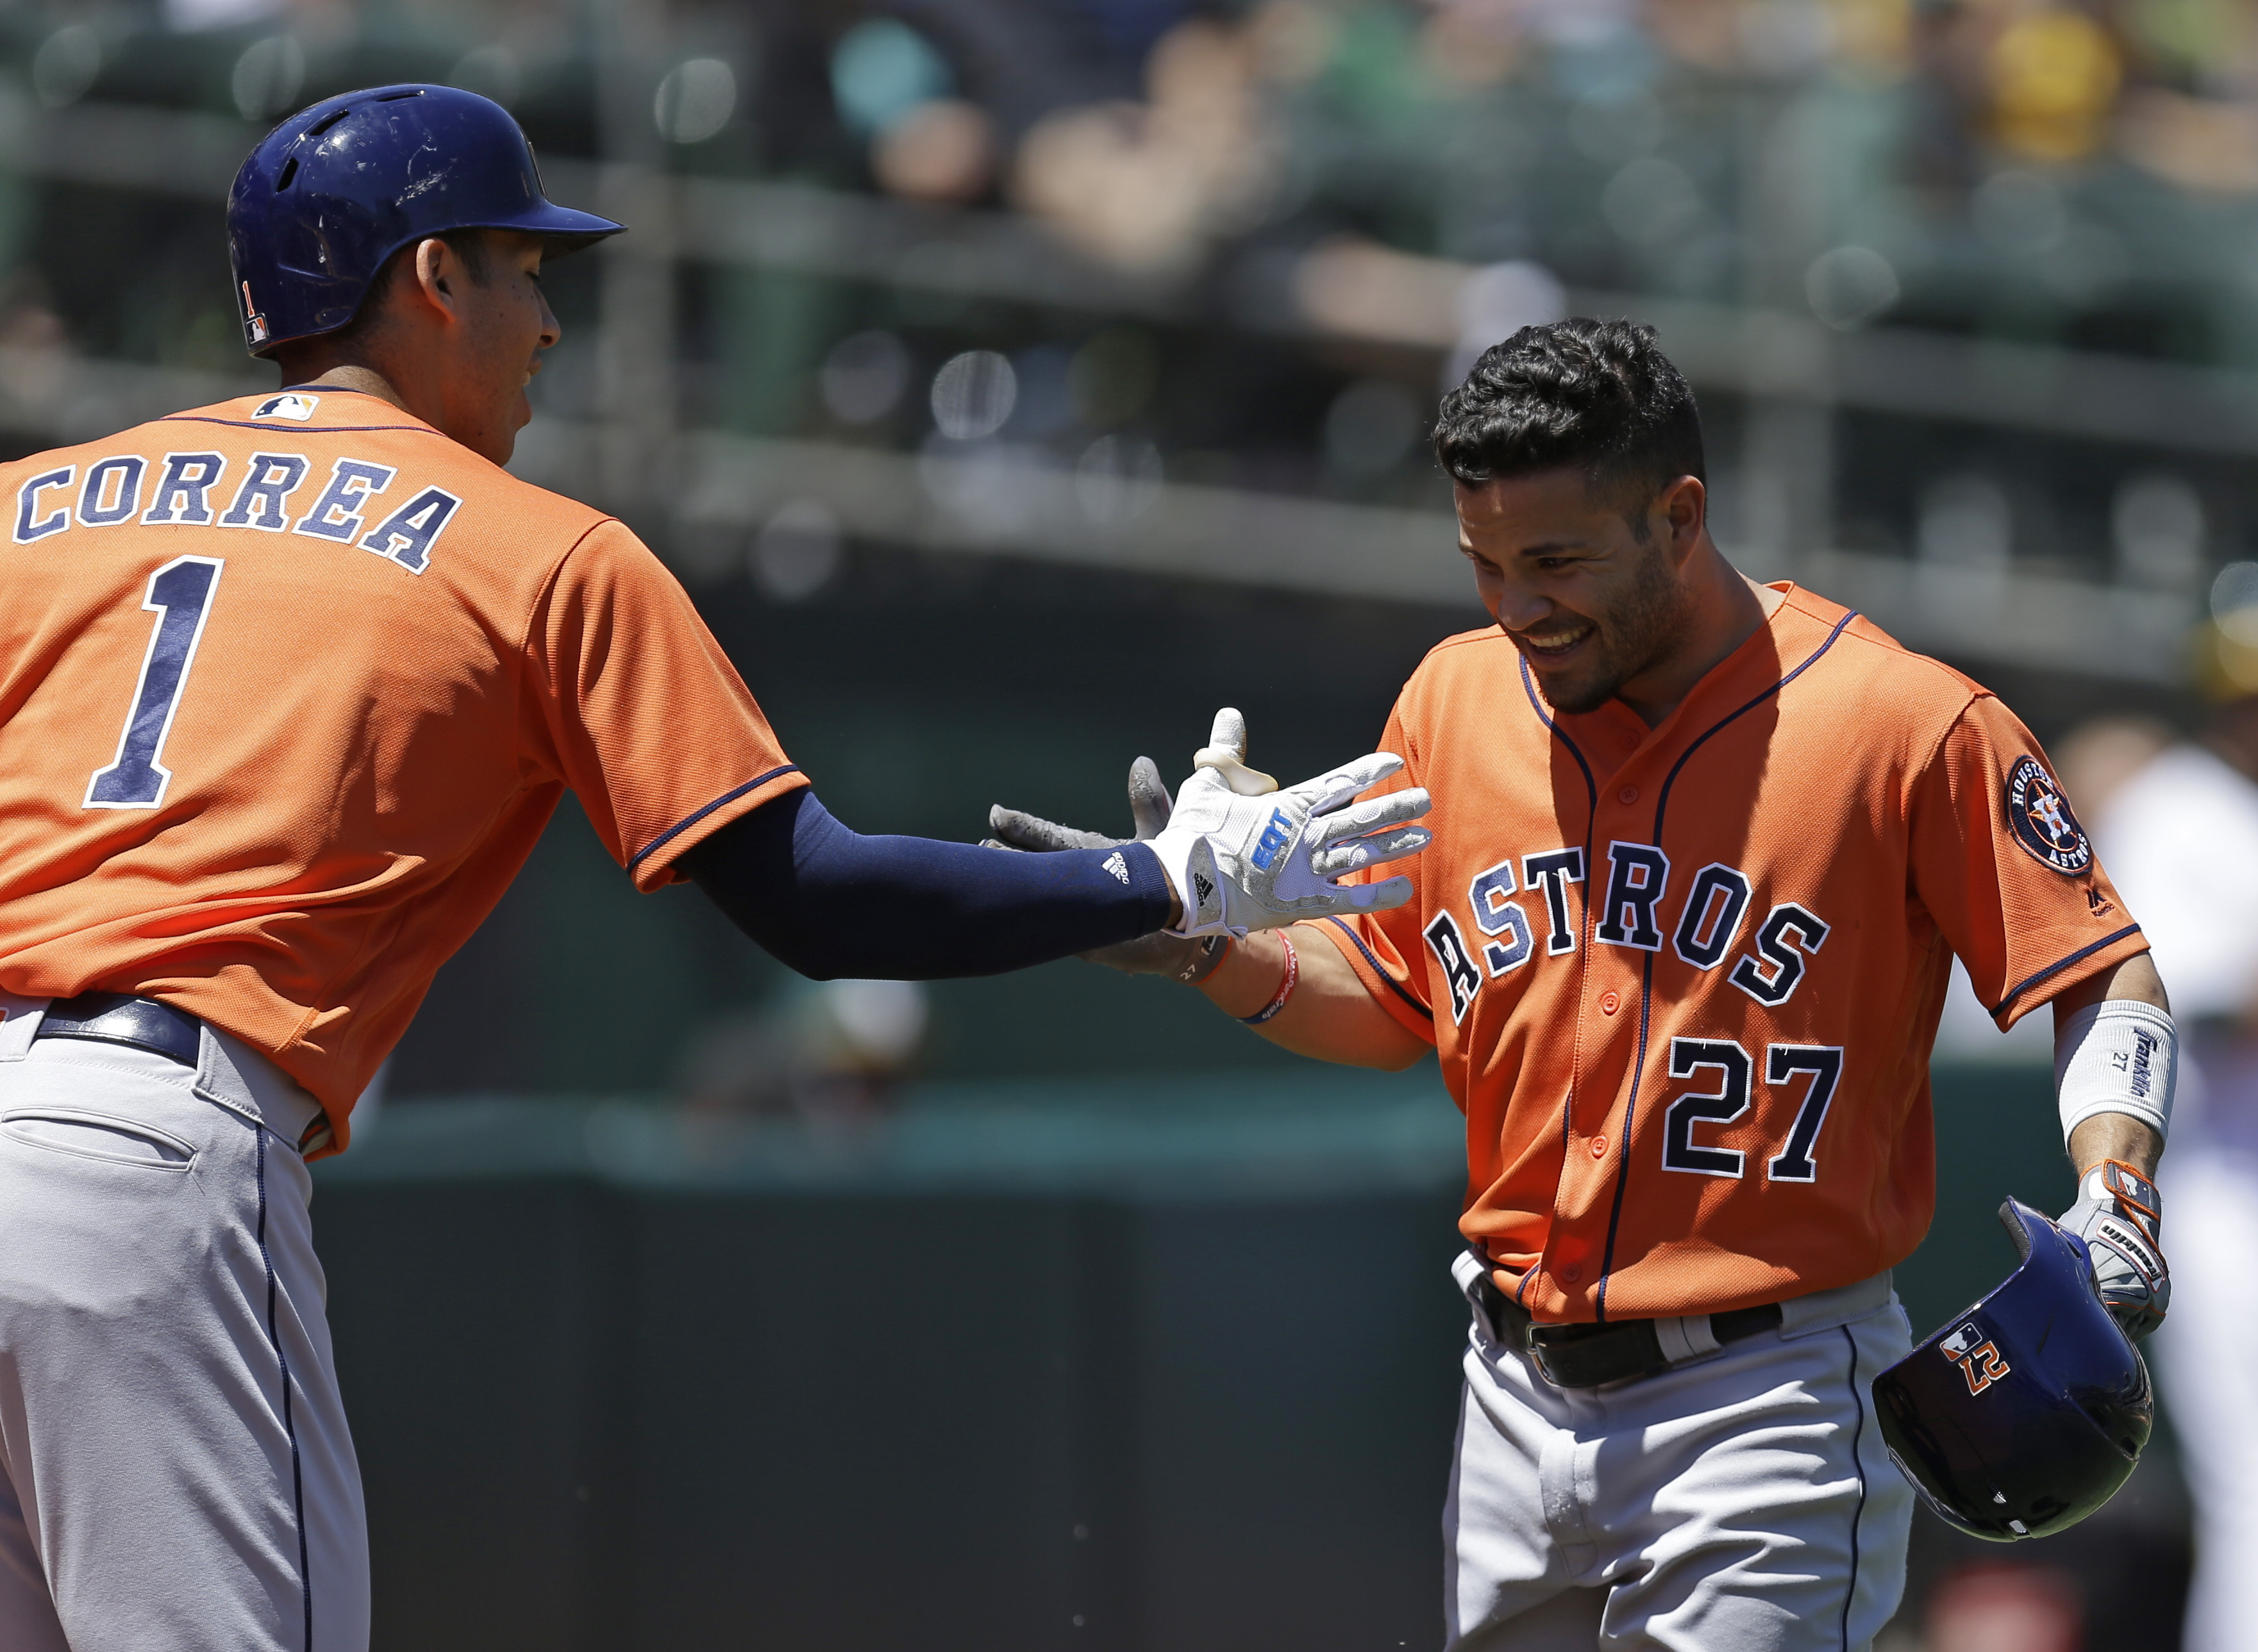 Houston Astros' Jose Altuve, right, celebrates with Carlos Correa (1) after hitting a home run off Oakland Athletics' Rich Hill in the first inning of a baseball game, Sunday, May 1, 2016, in Oakland, Calif. (AP Photo/Ben Margot)